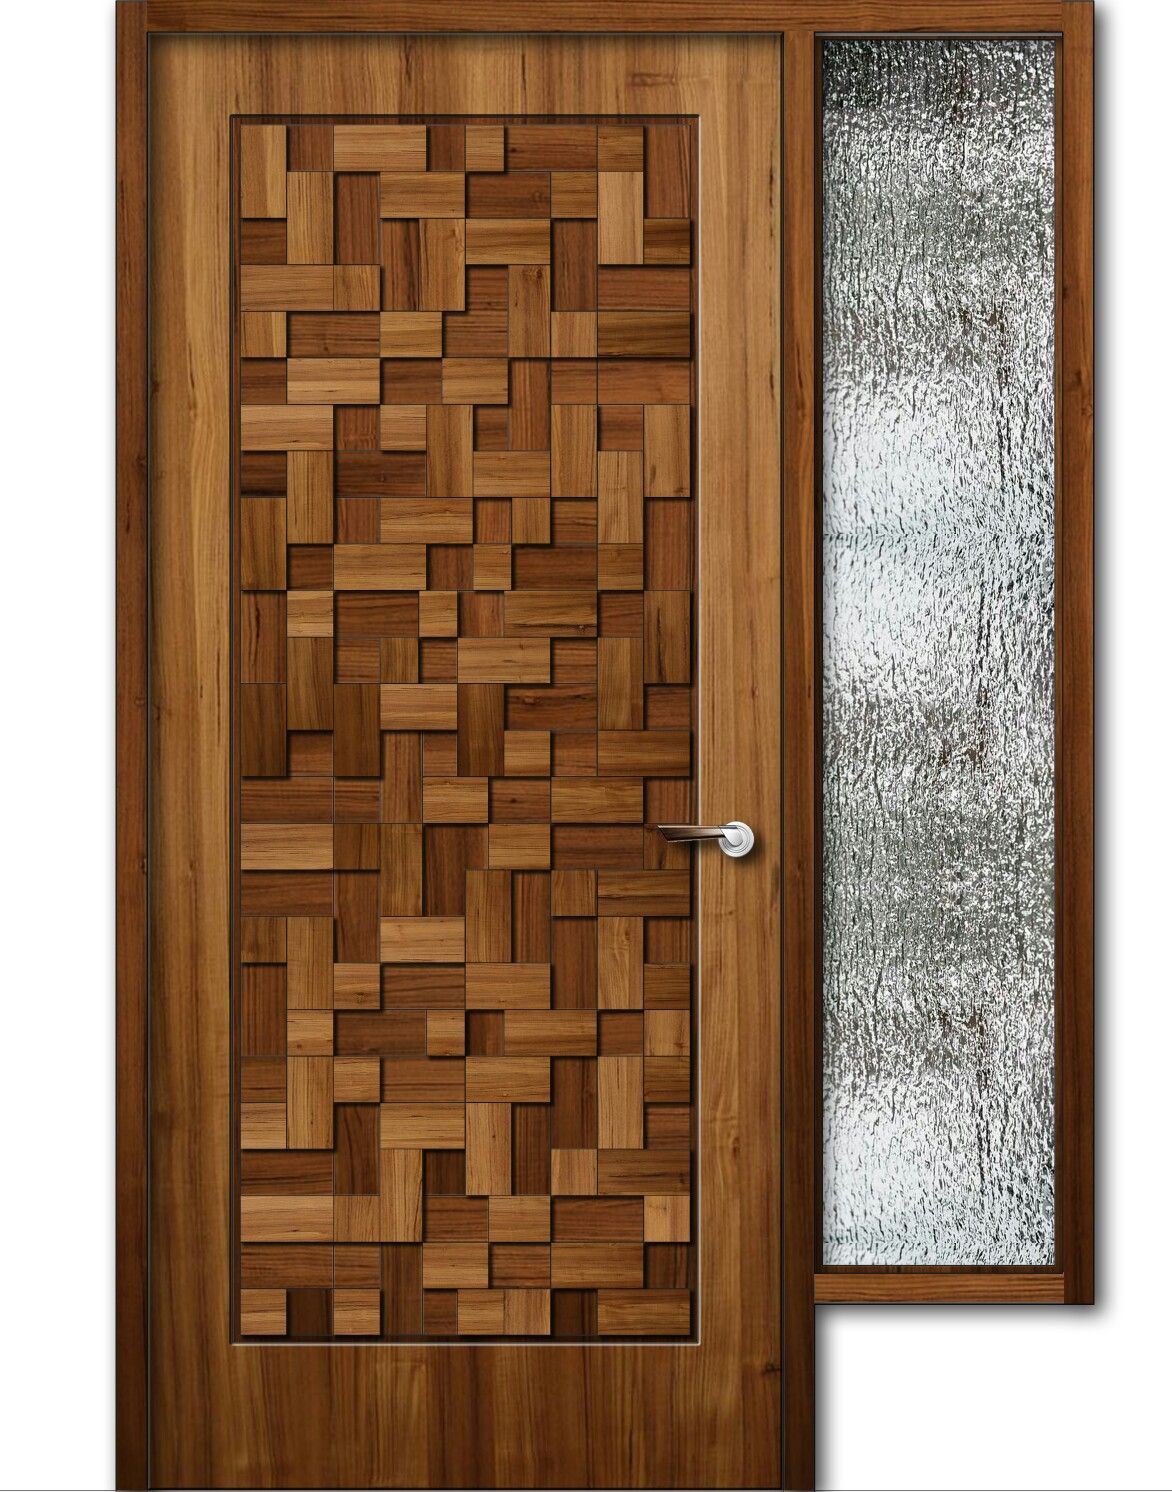 Teak wood finish wooden door with window 8feet height for Wooden door ideas